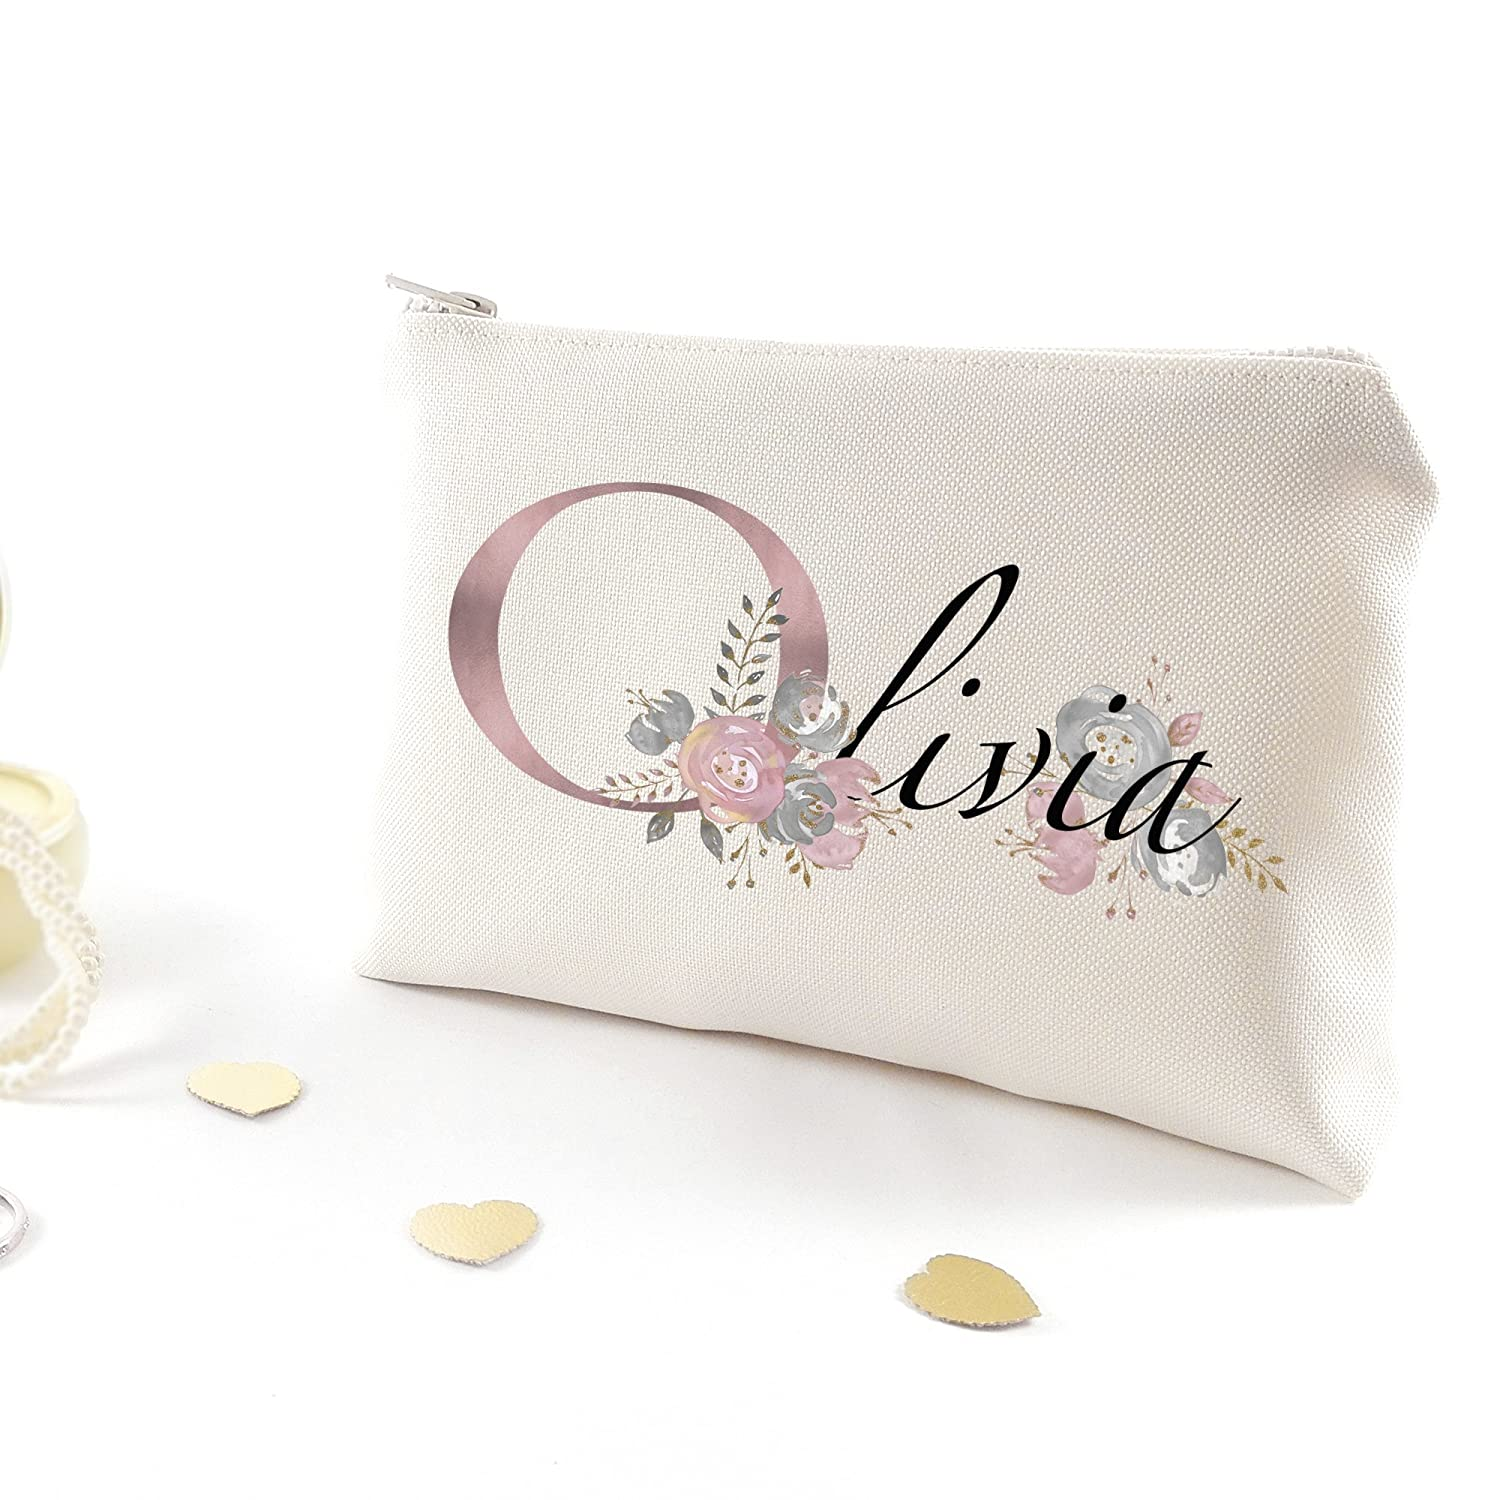 Maid of honor gift - Personalized bridesmaid cosmetic bag